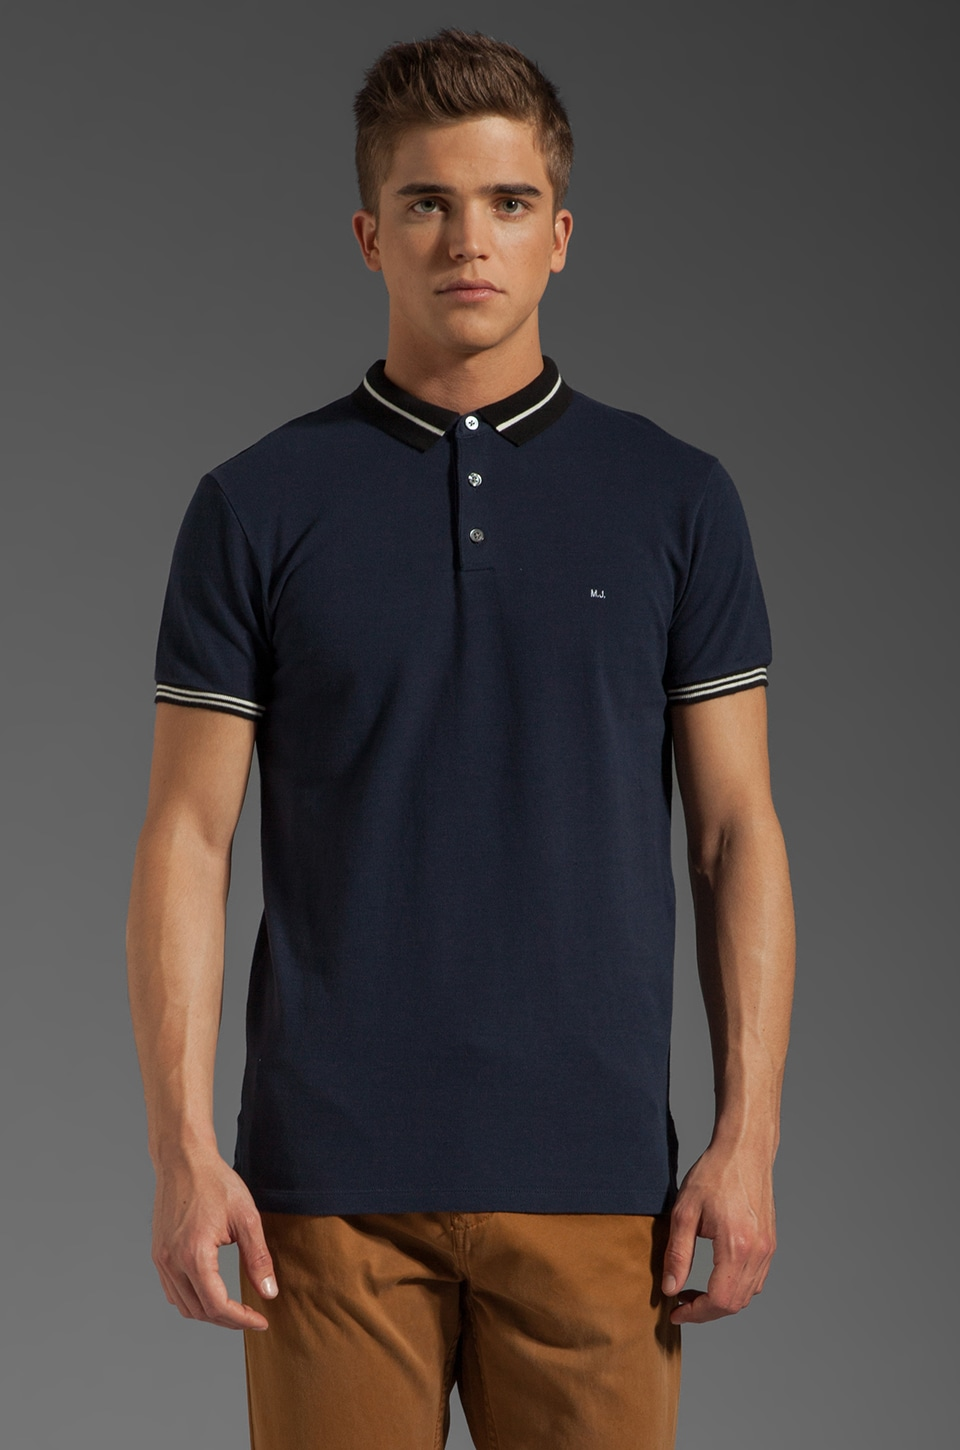 Marc by Marc Jacobs Striped Collar Polo in Twilight Navy